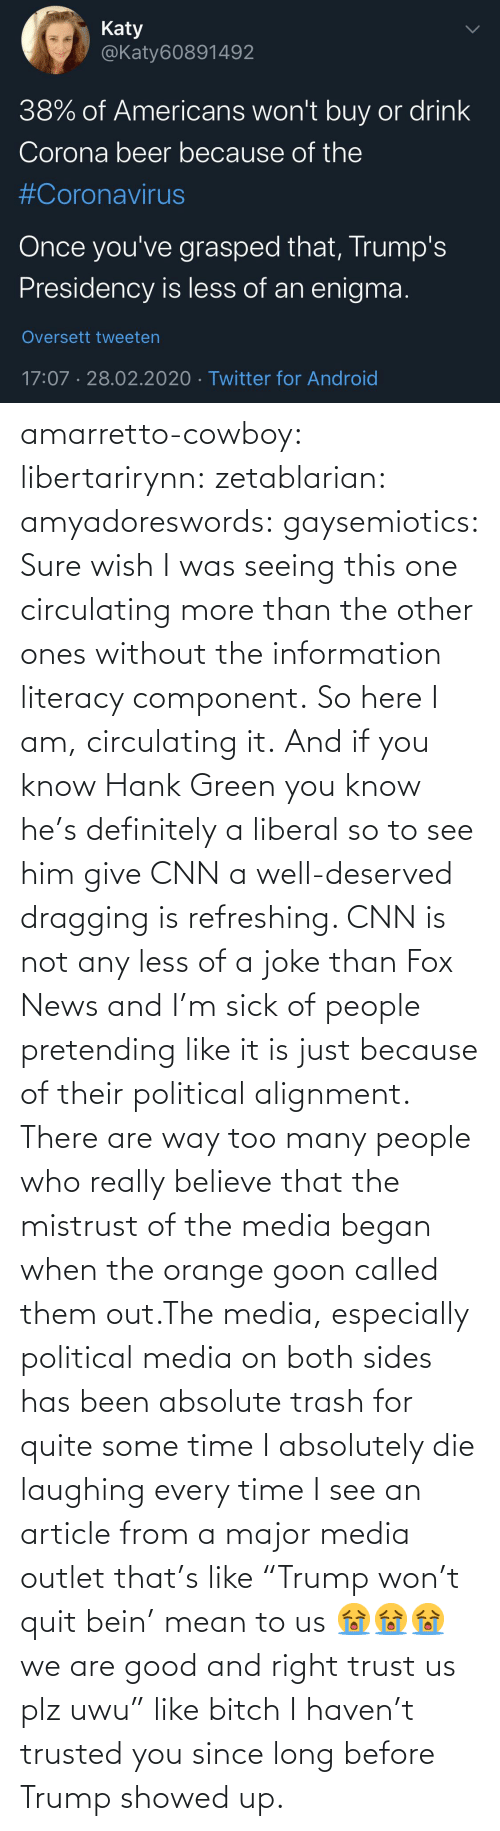 "I See: amarretto-cowboy:  libertarirynn:  zetablarian:  amyadoreswords:   gaysemiotics:       Sure wish I was seeing this one circulating more than the other ones without the information literacy component. So here I am, circulating it.    And if you know Hank Green you know he's definitely a liberal so to see him give CNN a well-deserved dragging is refreshing. CNN is not any less of a joke than Fox News and I'm sick of people pretending like it is just because of their political alignment.   There are way too many people who really believe that the mistrust of the media began when the orange goon called them out.The media, especially political media on both sides has been absolute trash for quite some time   I absolutely die laughing every time I see an article from a major media outlet that's like ""Trump won't quit bein' mean to us 😭😭😭 we are good and right trust us plz uwu"" like bitch I haven't trusted you since long before Trump showed up."